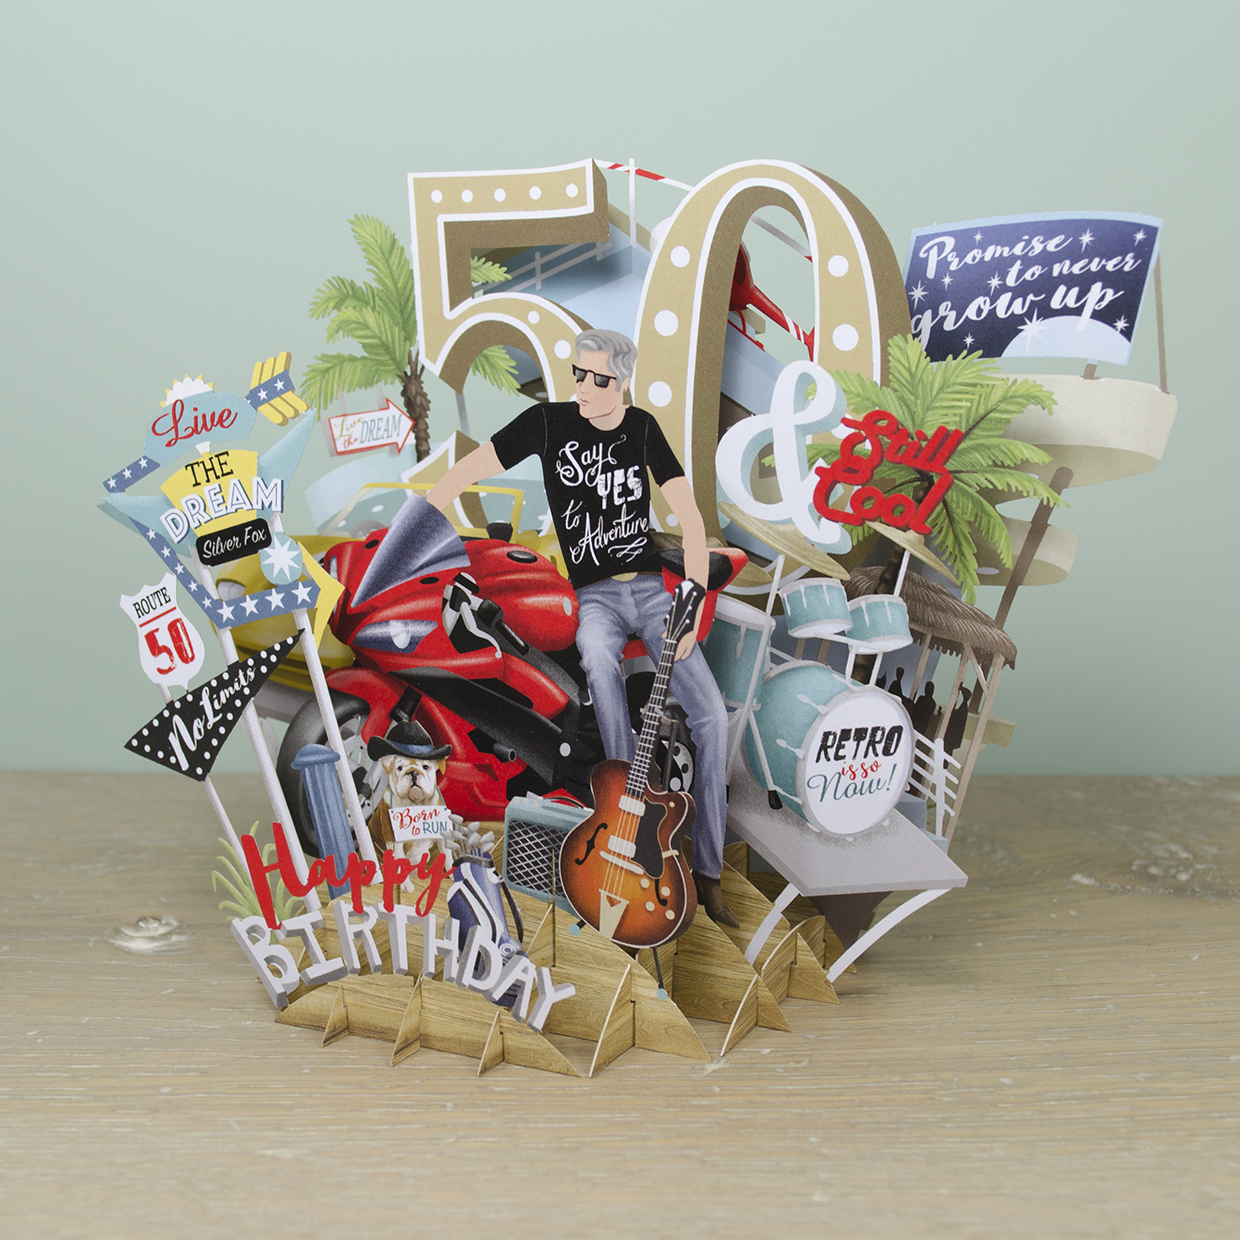 50th Birthday Man Top Of The World Pop Up Greetings Card